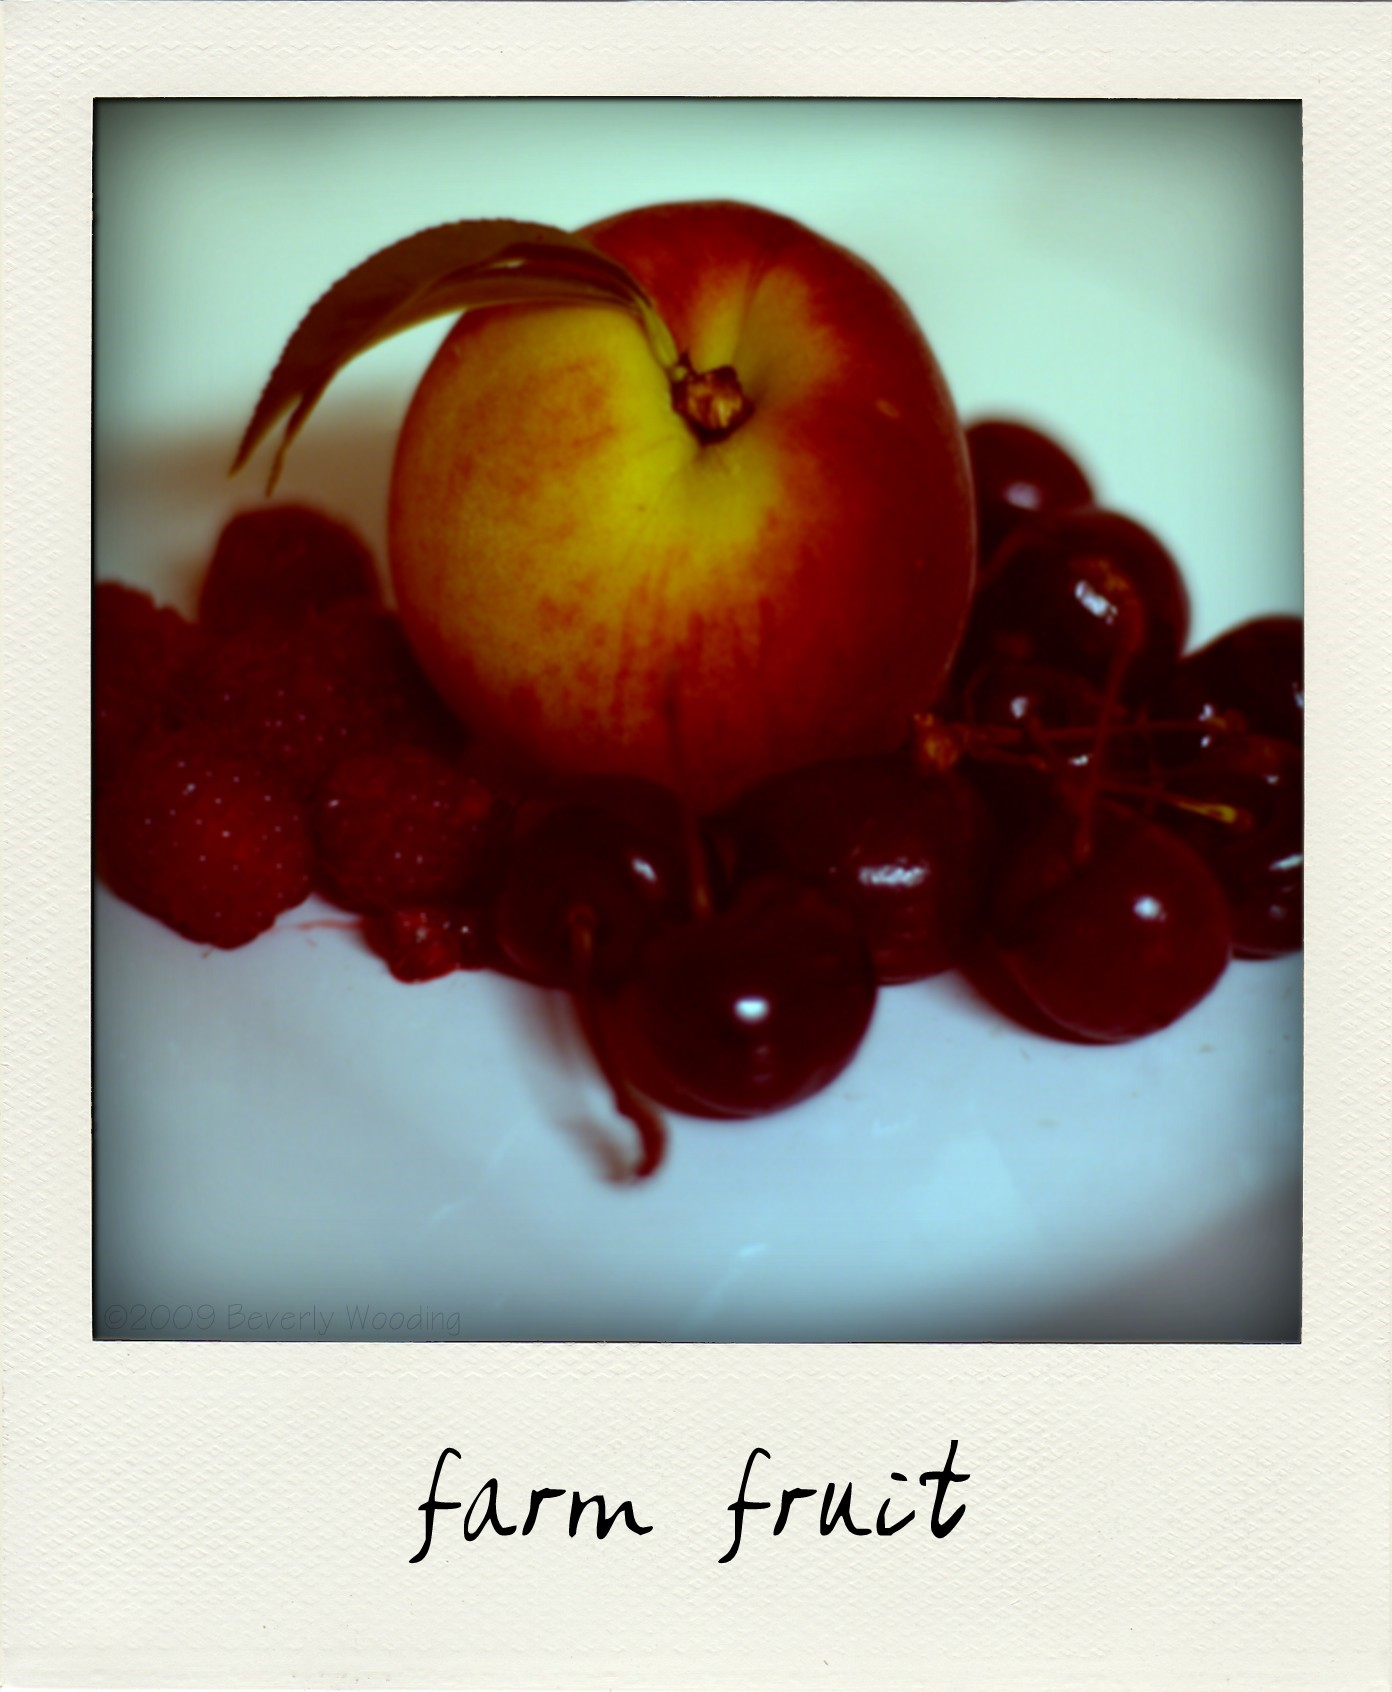 farm fruit